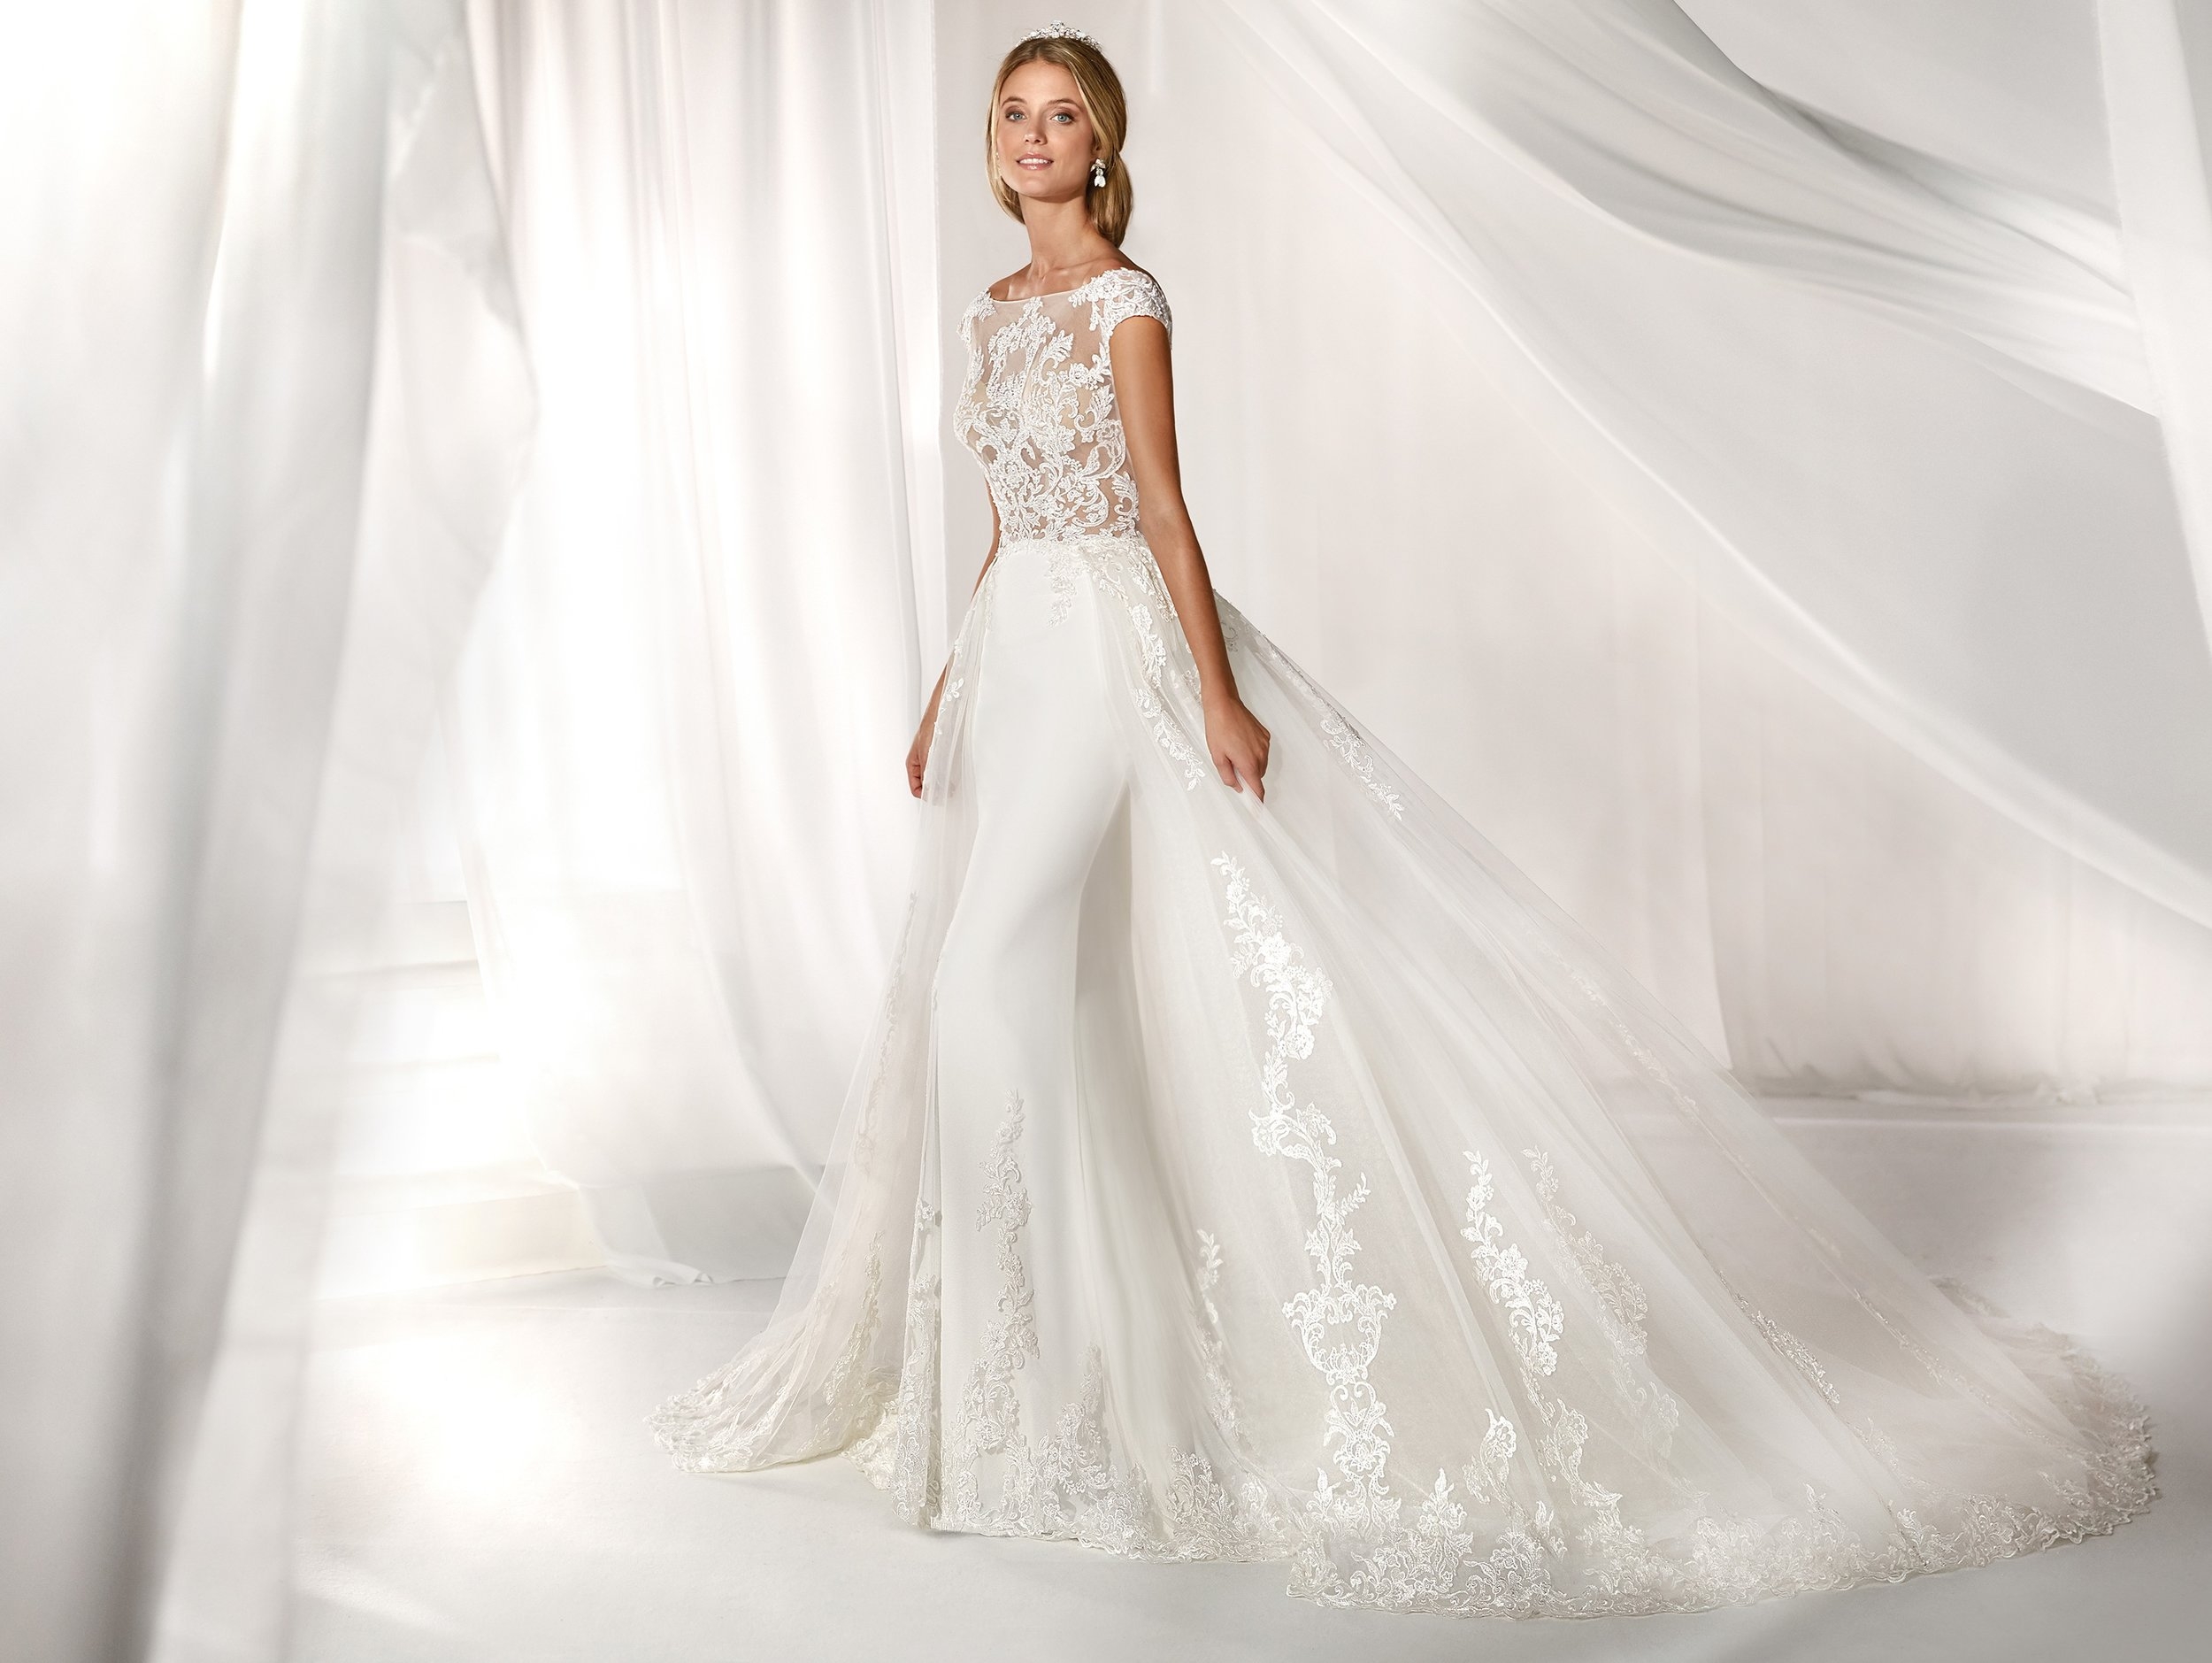 Nine Trends In 2019 And 2020 Wedding Dresses Bespoke Beloved